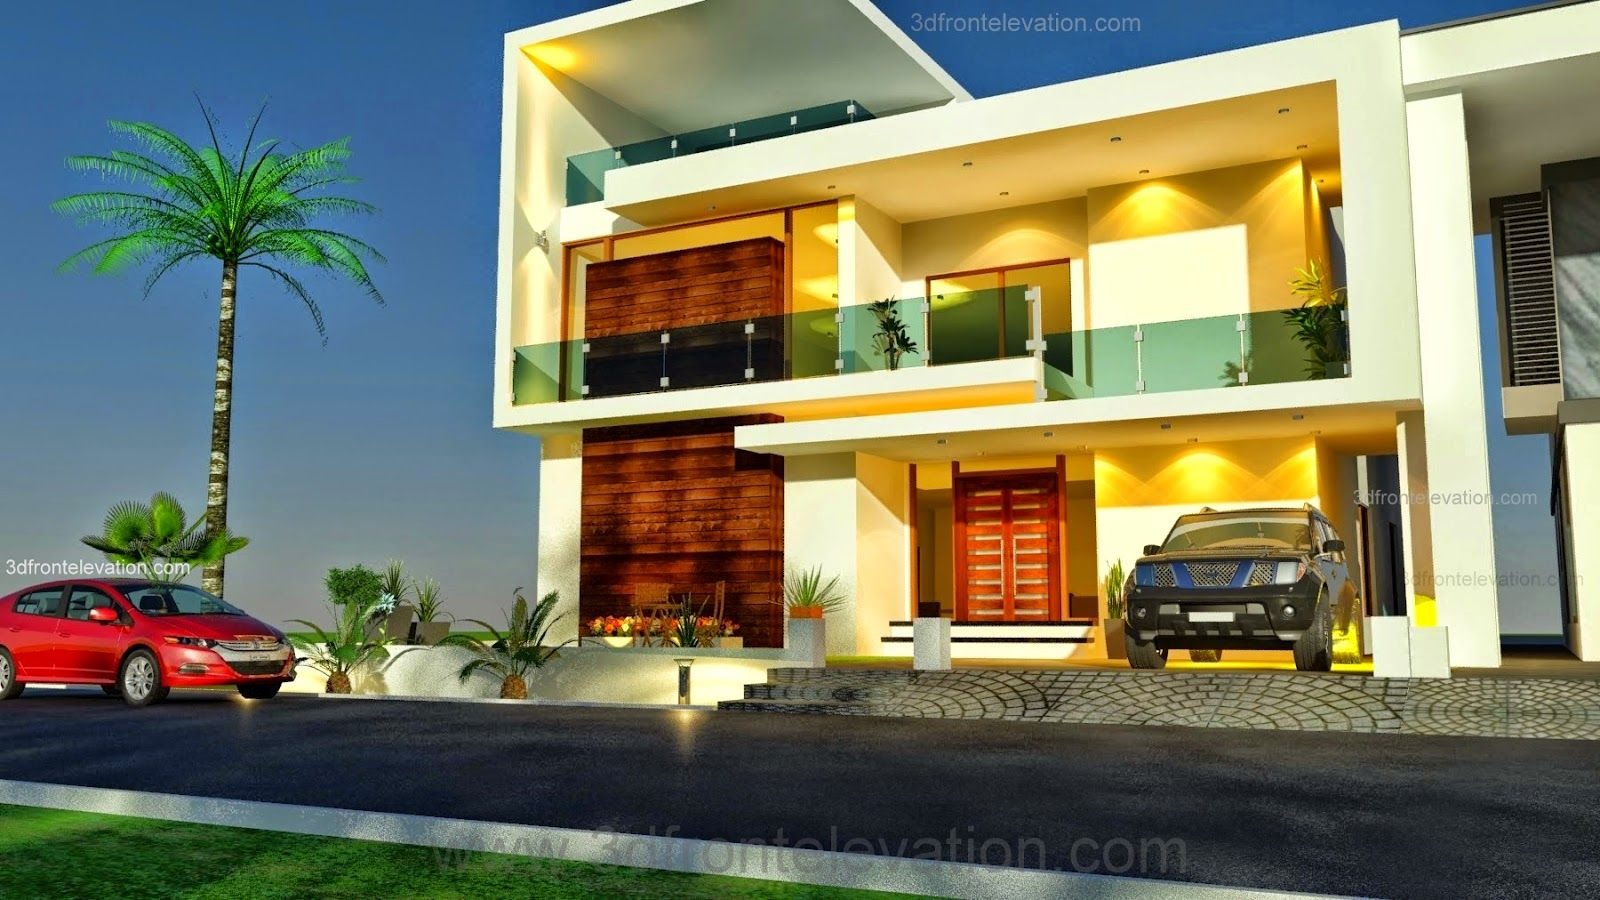 Exceptionnel Modern Home Design 2014 Of 3D Front Elevation Com 1 Kanal Corner Plot 2  House Ign